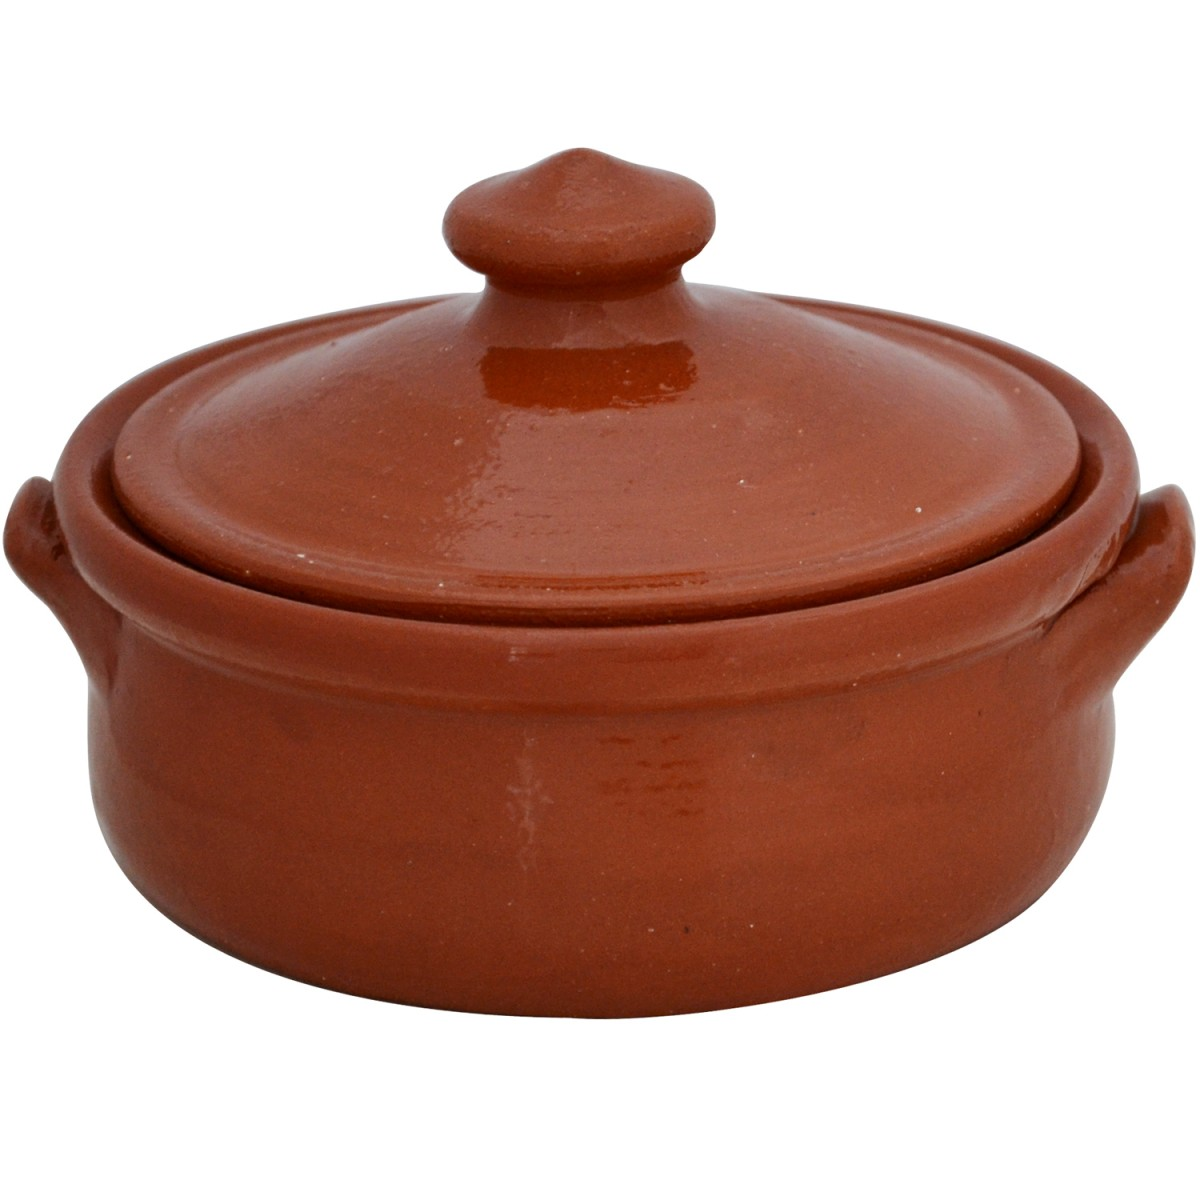 Handmade_Claypot_Side-Dish_Atomic_Portion-1